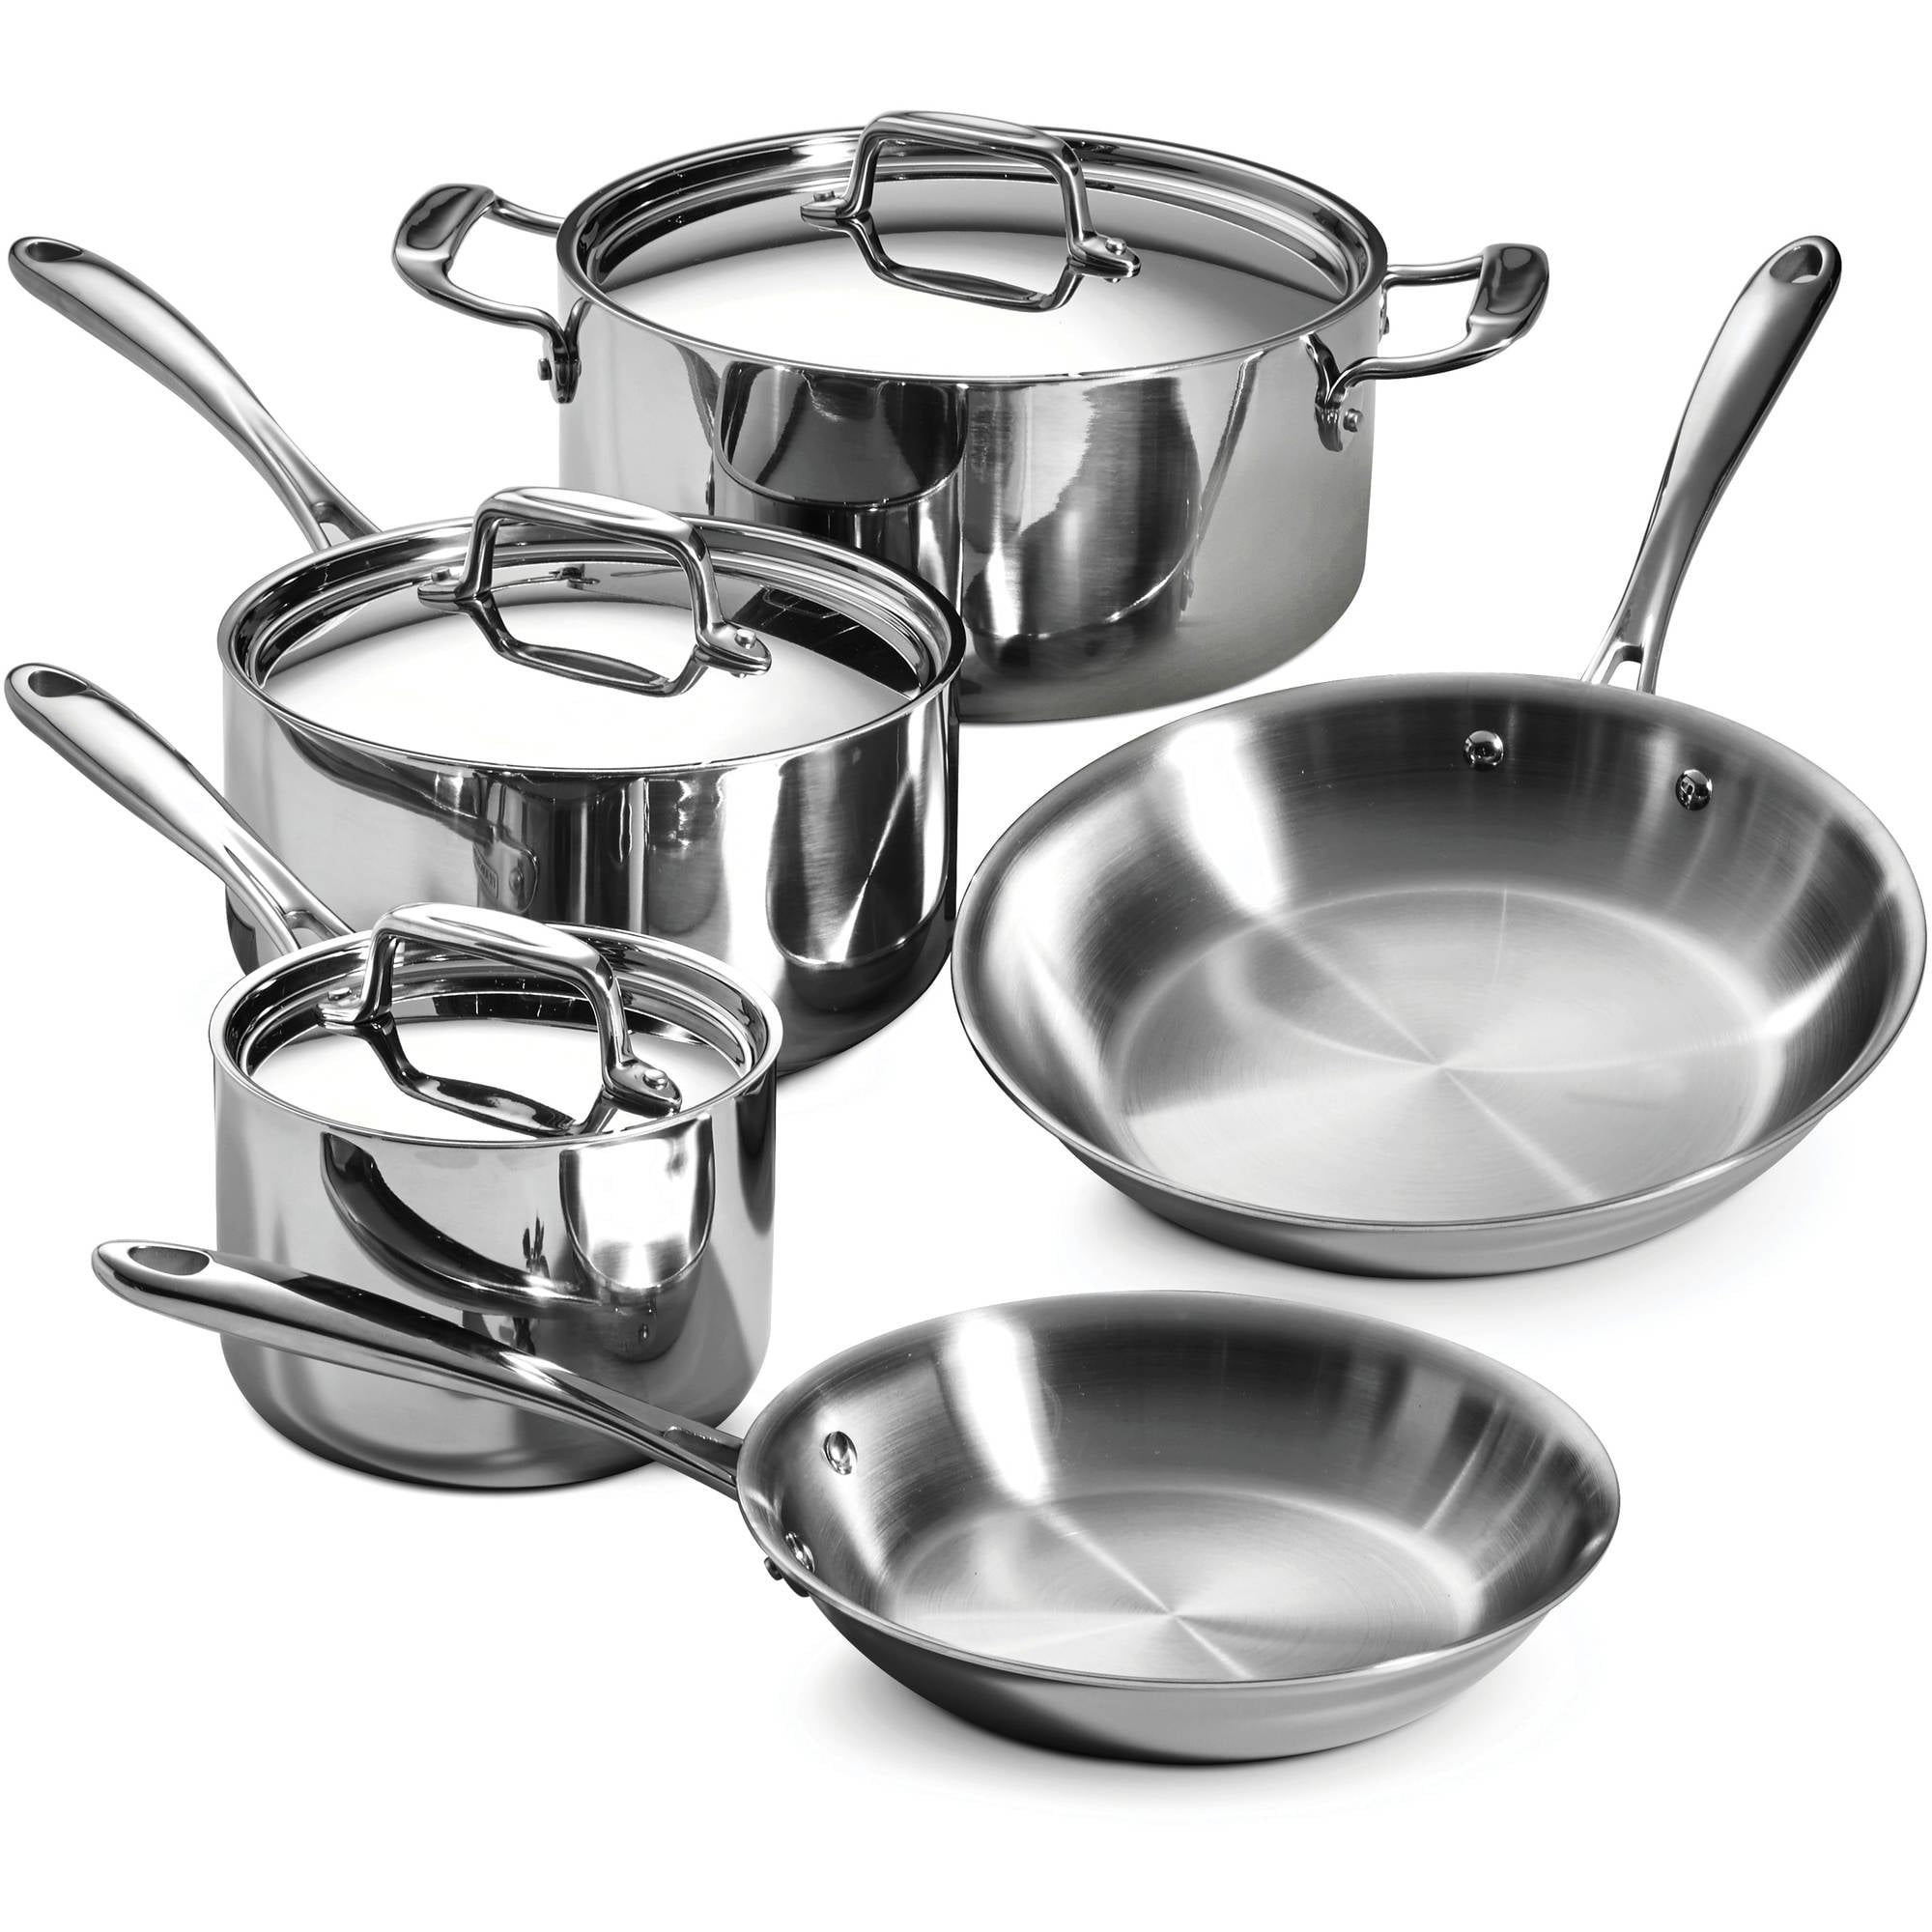 Image result for Christmas Pots and pans